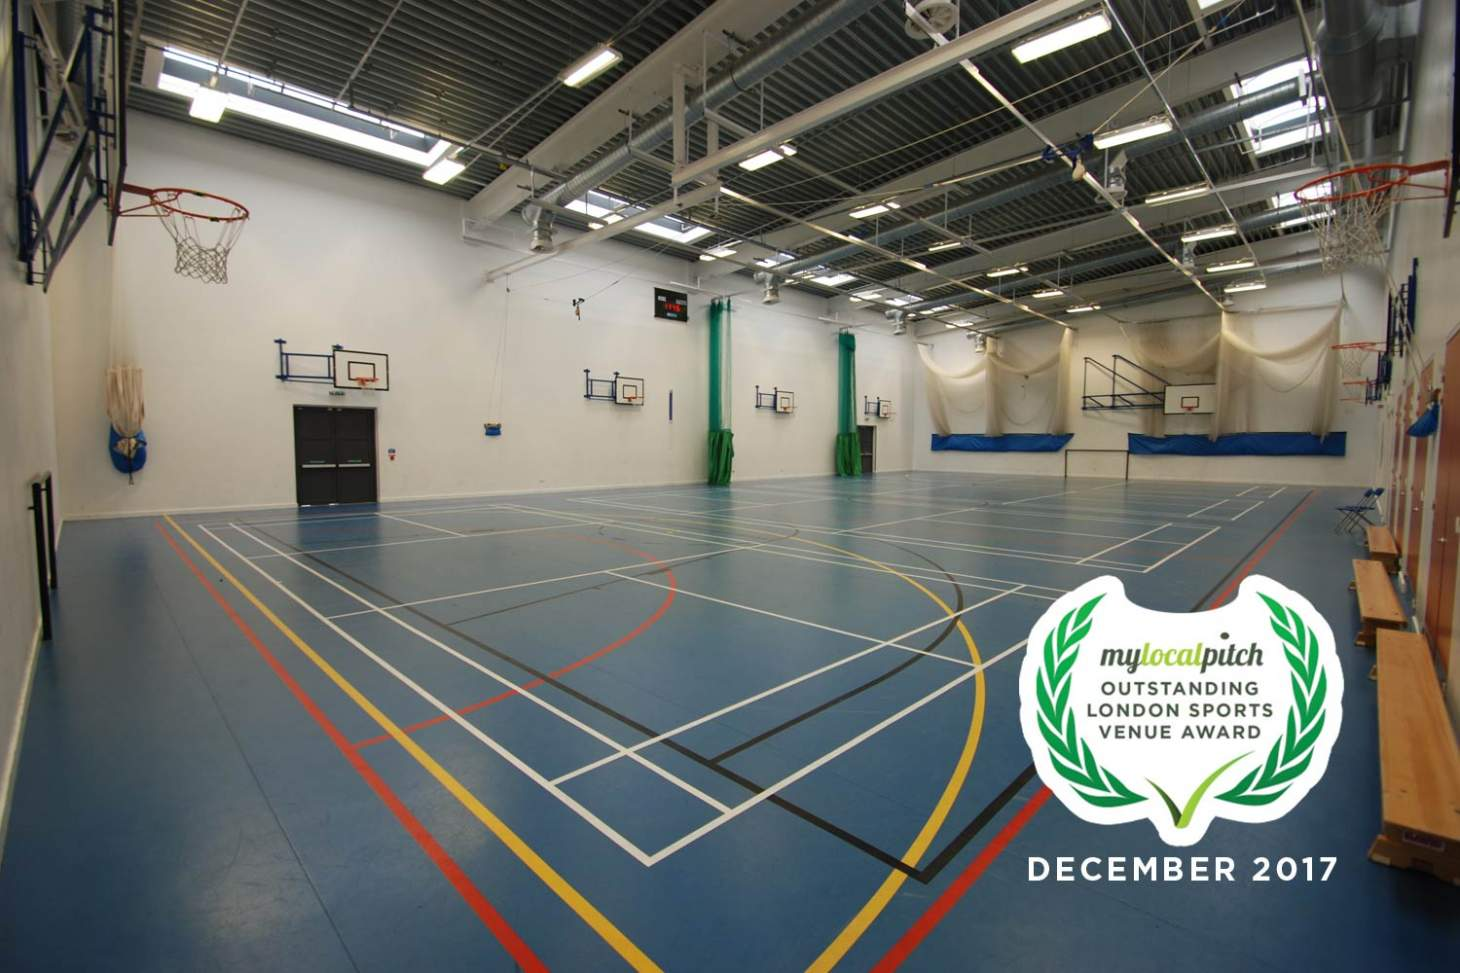 Castle Green Leisure Centre Nets | Sports hall cricket facilities